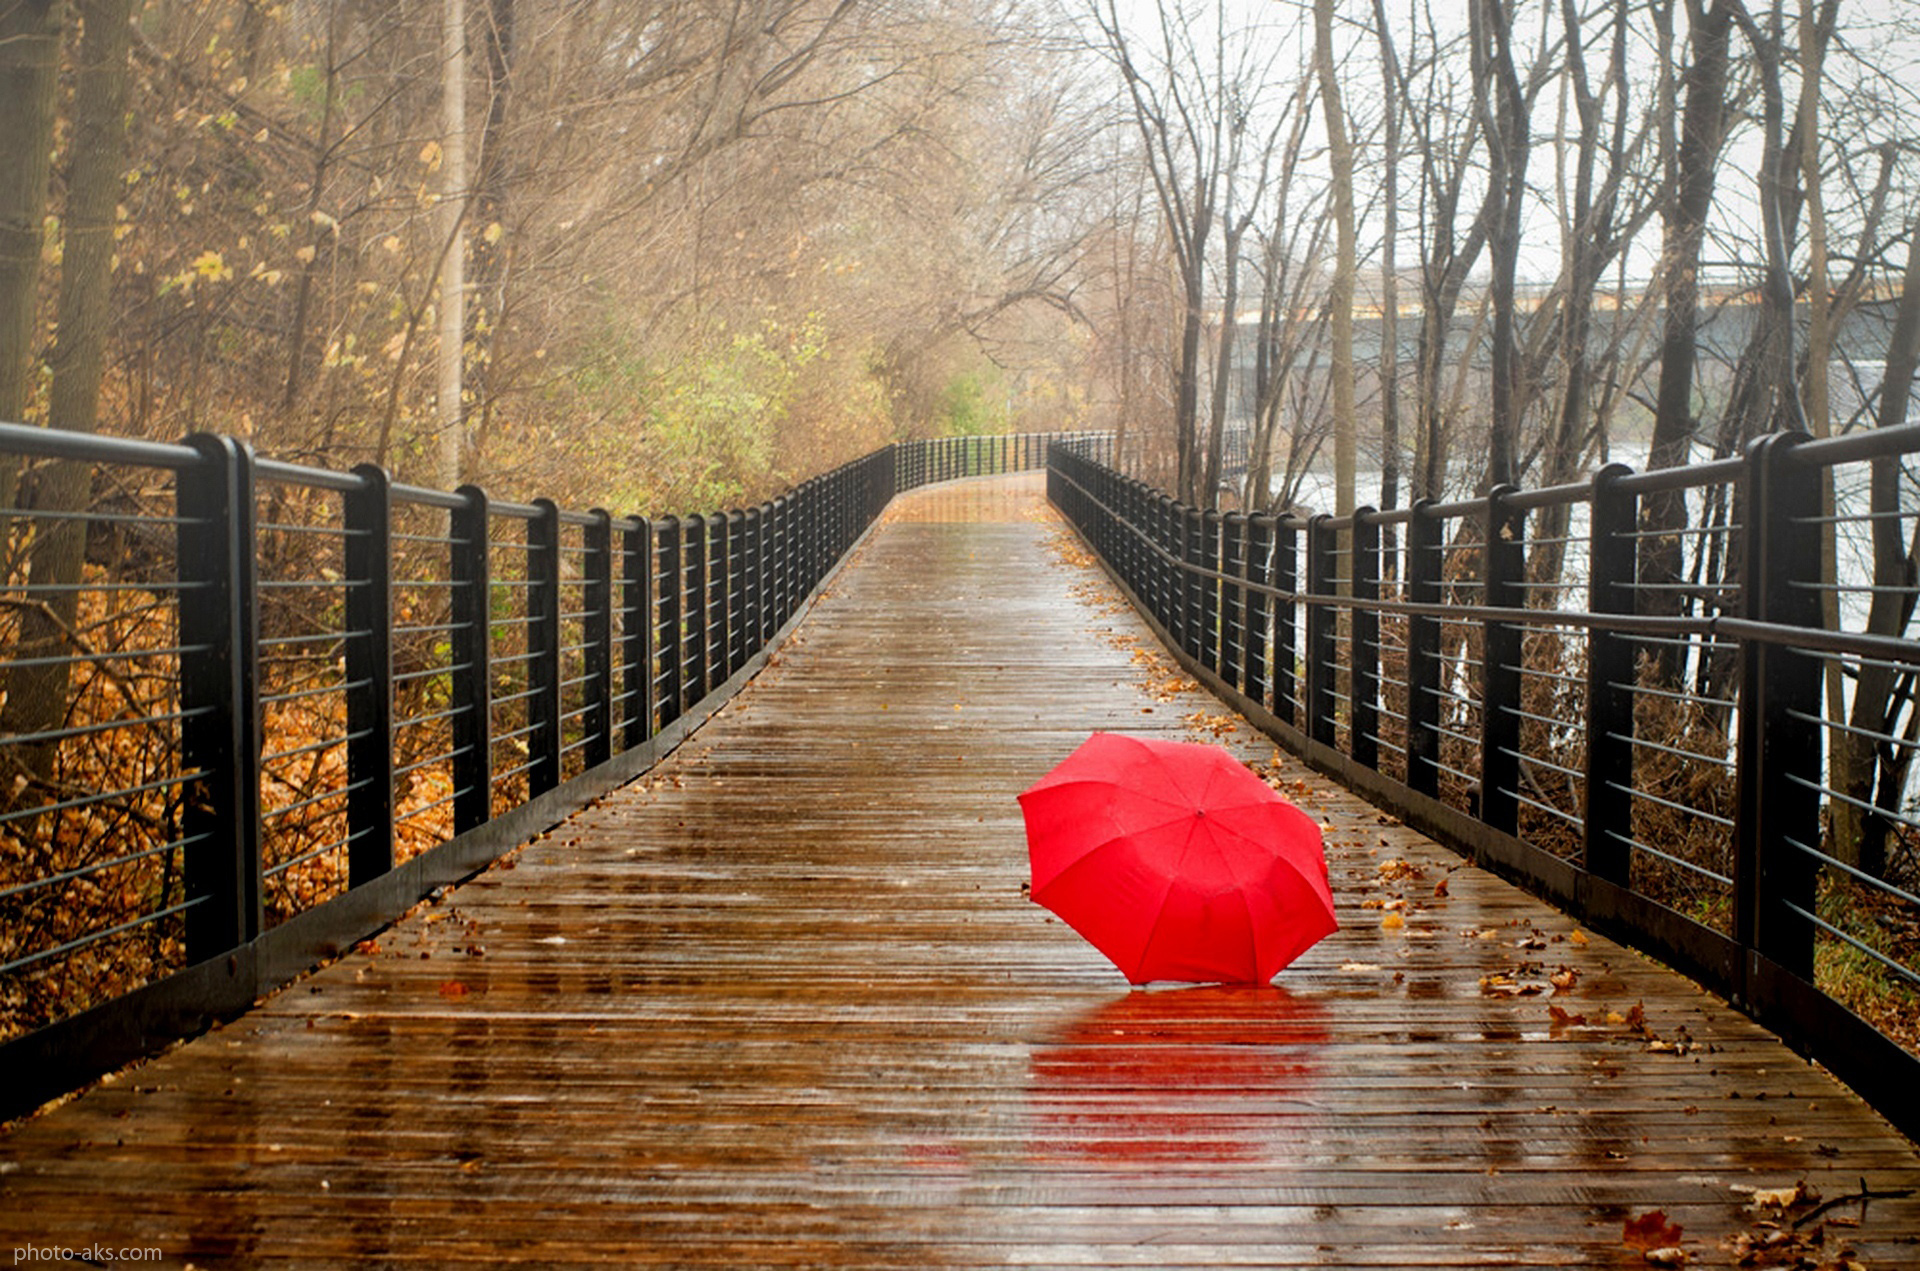 http://pic.photo-aks.com/photo/nature/rain/large/Bridge_Red_Umbrella_Rain.jpg